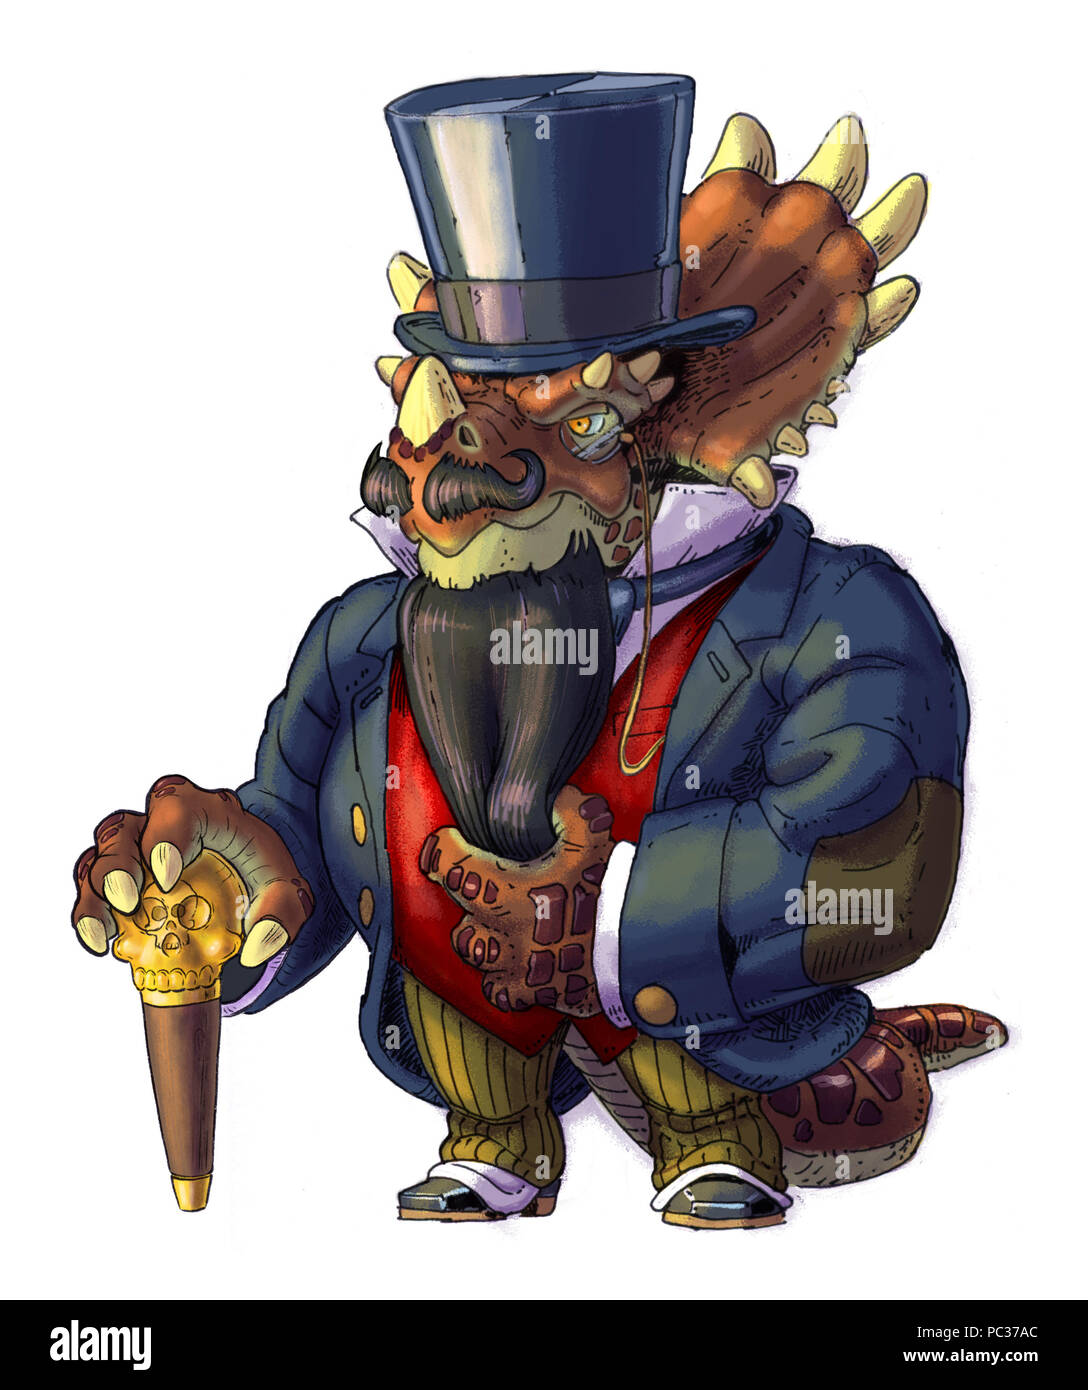 Hand drawn cartoon clip art illustration of an anthropomorphic steampunk Styracosaurus dinosaur wearing Victorian clothes with a beard, top hat, and a - Stock Image